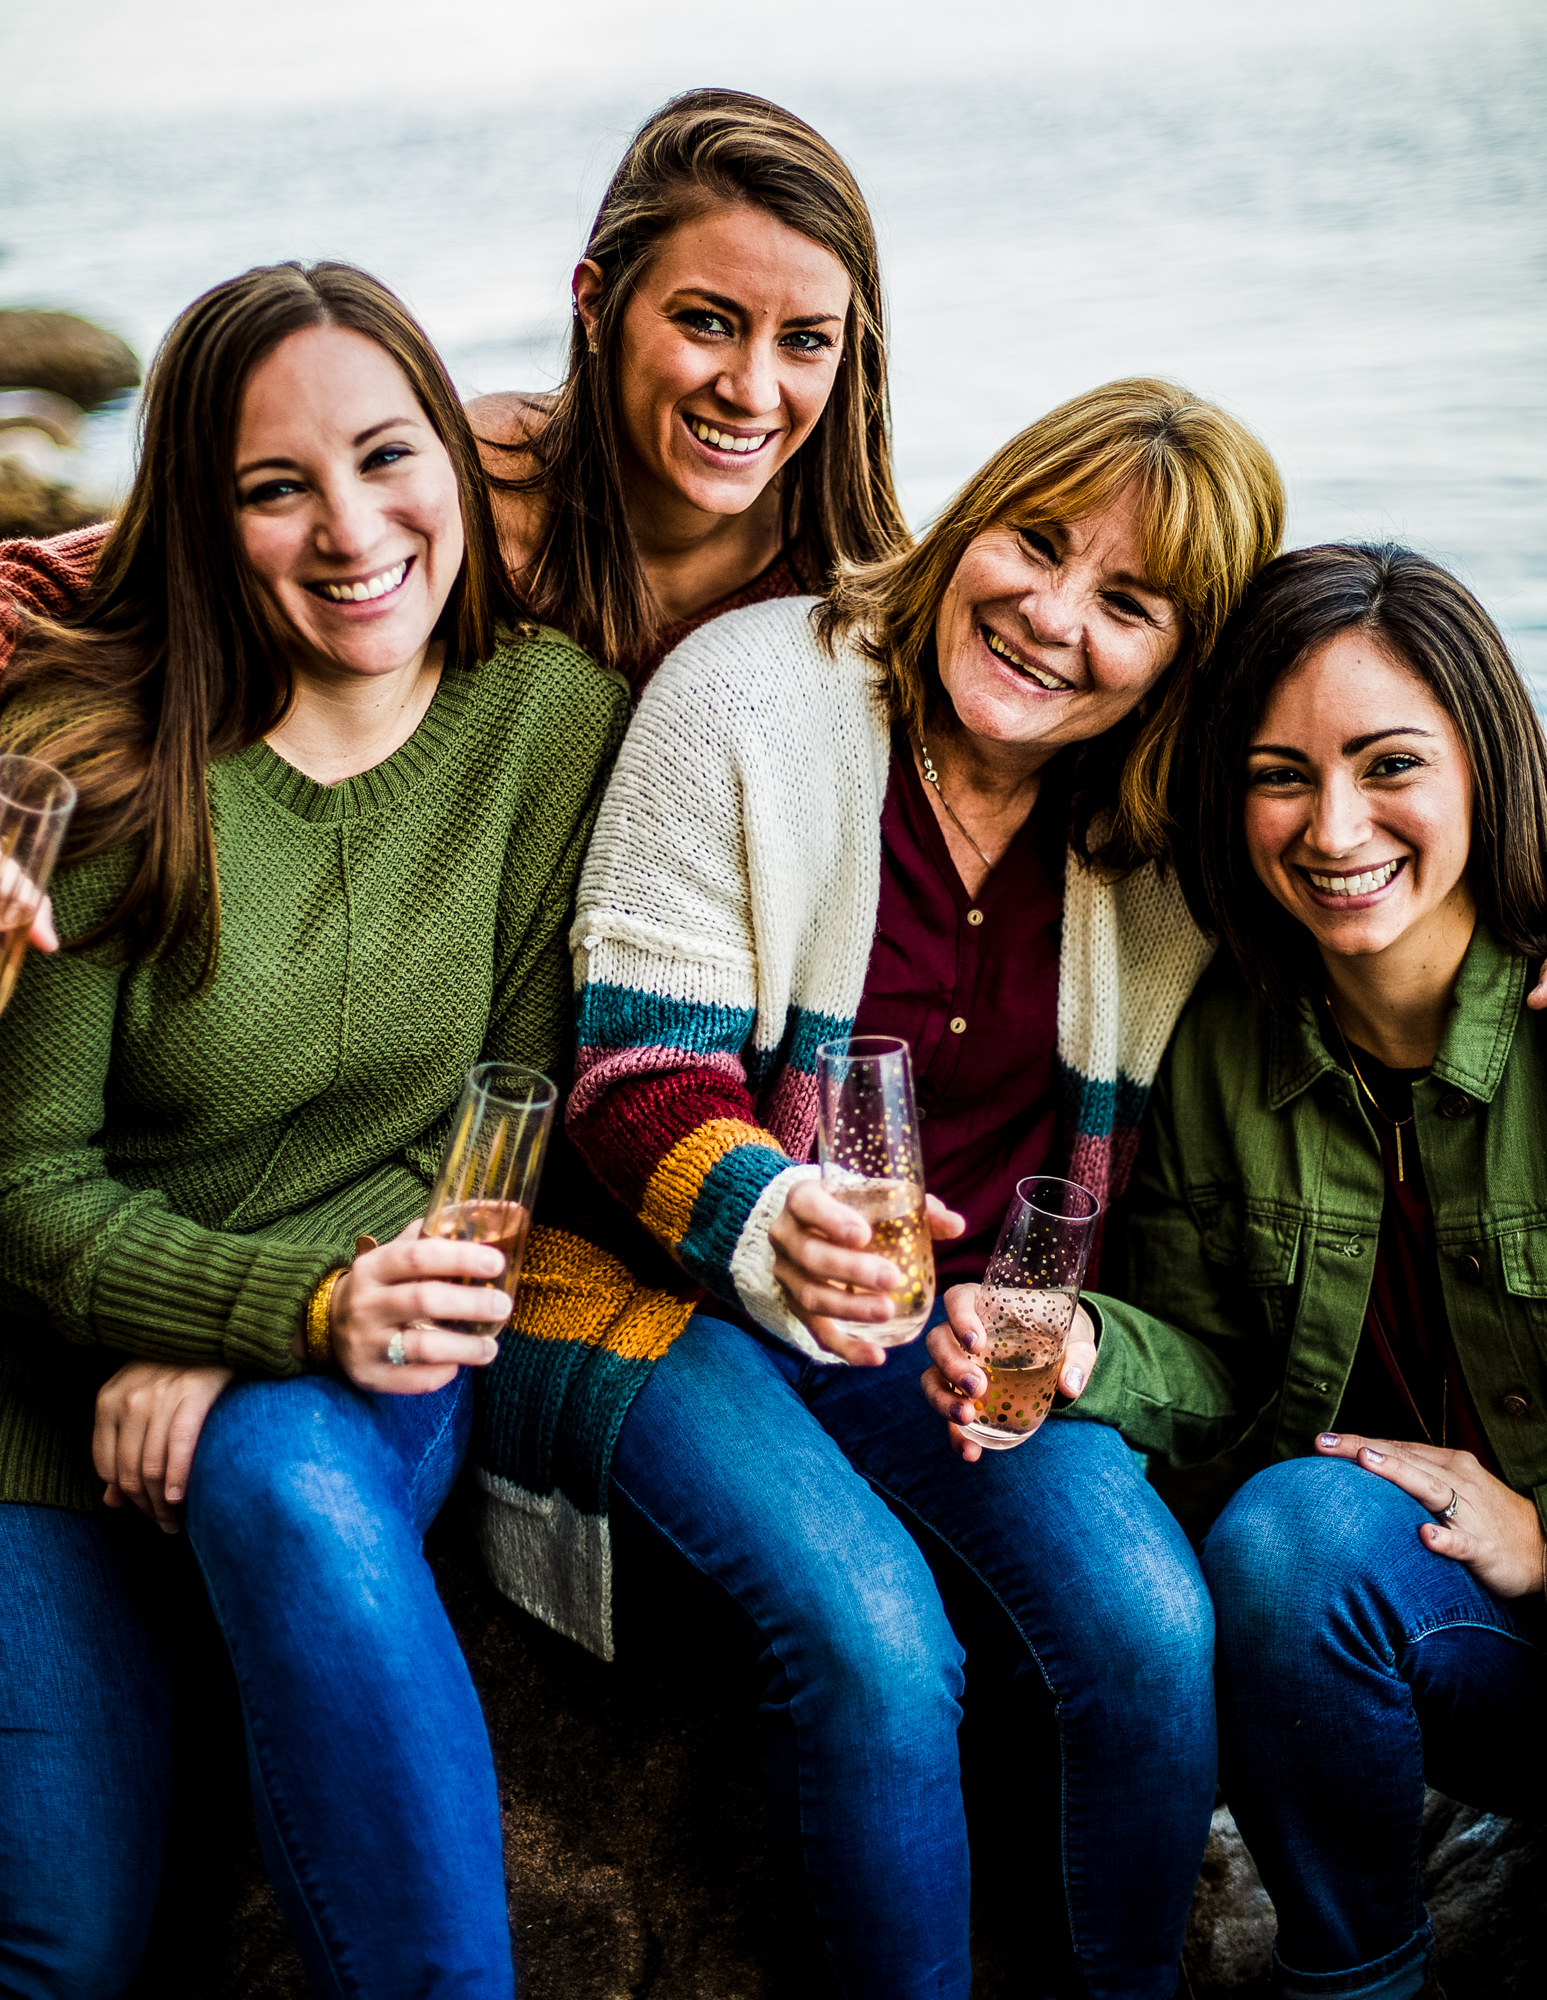 Mother and daughters pose together for mom's 60th birthday cake smash in North East, PA